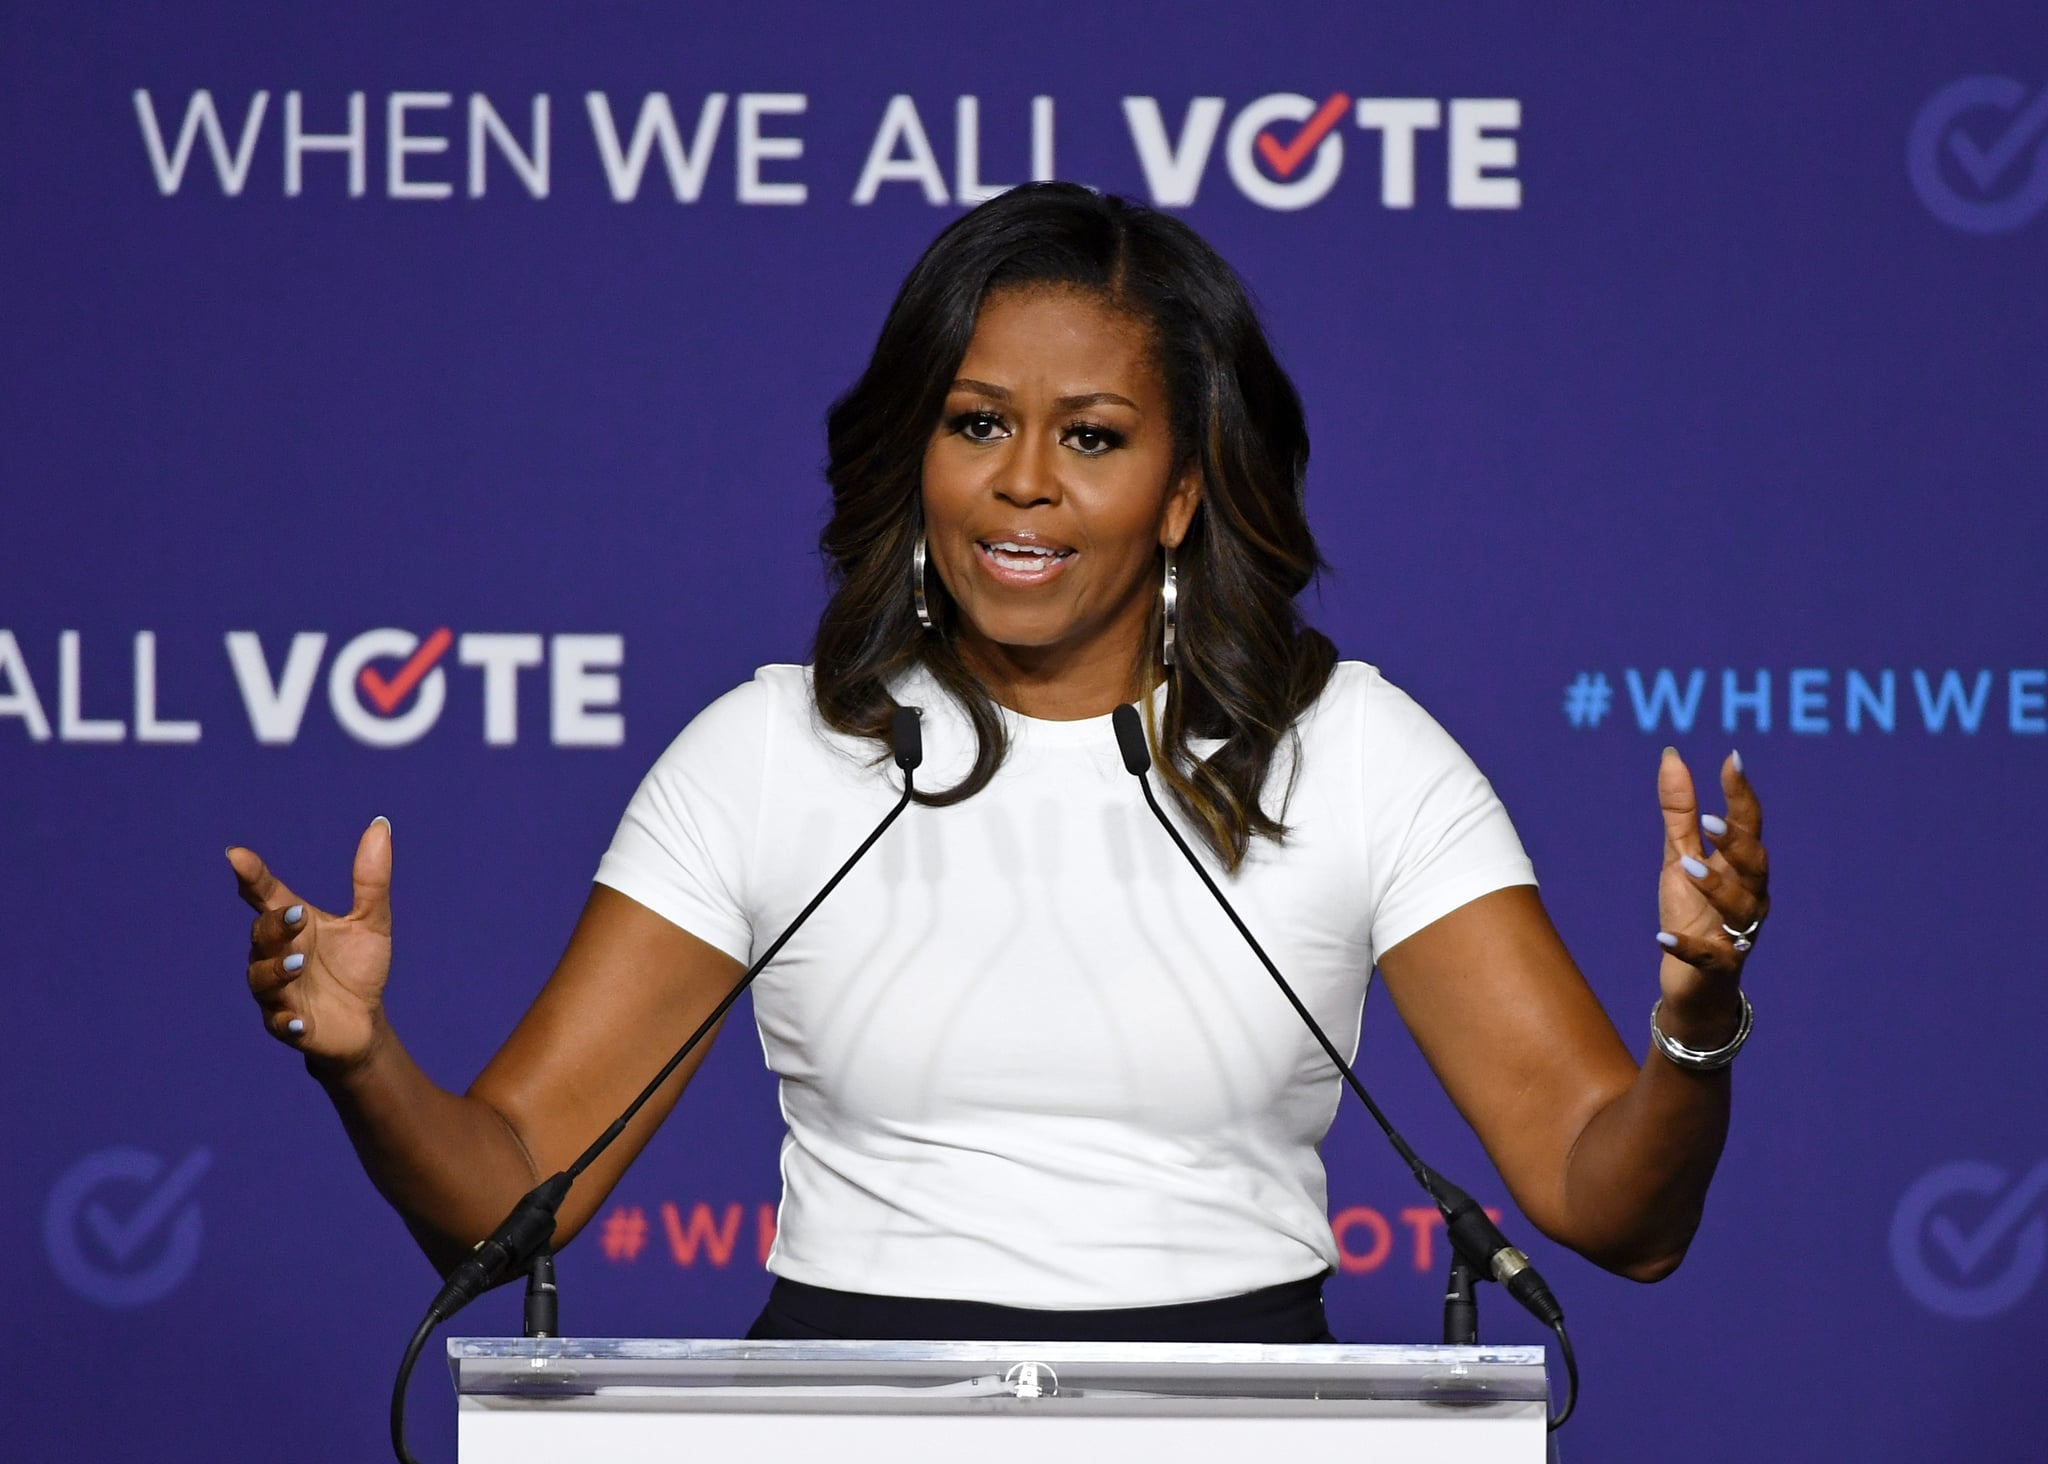 LAS VEGAS, NV - SEPTEMBER 23:  Former first lady Michelle Obama speaks during a rally for When We All Vote's National Week of Action at Chaparral High School on September 23, 2018 in Las Vegas, Nevada. Obama is the founder and a co-chairwoman of the organisation that aims to help people register and to vote. Early voting for the 2018 midterm elections in Nevada begins on October 20.  (Photo by Ethan Miller/Getty Images)